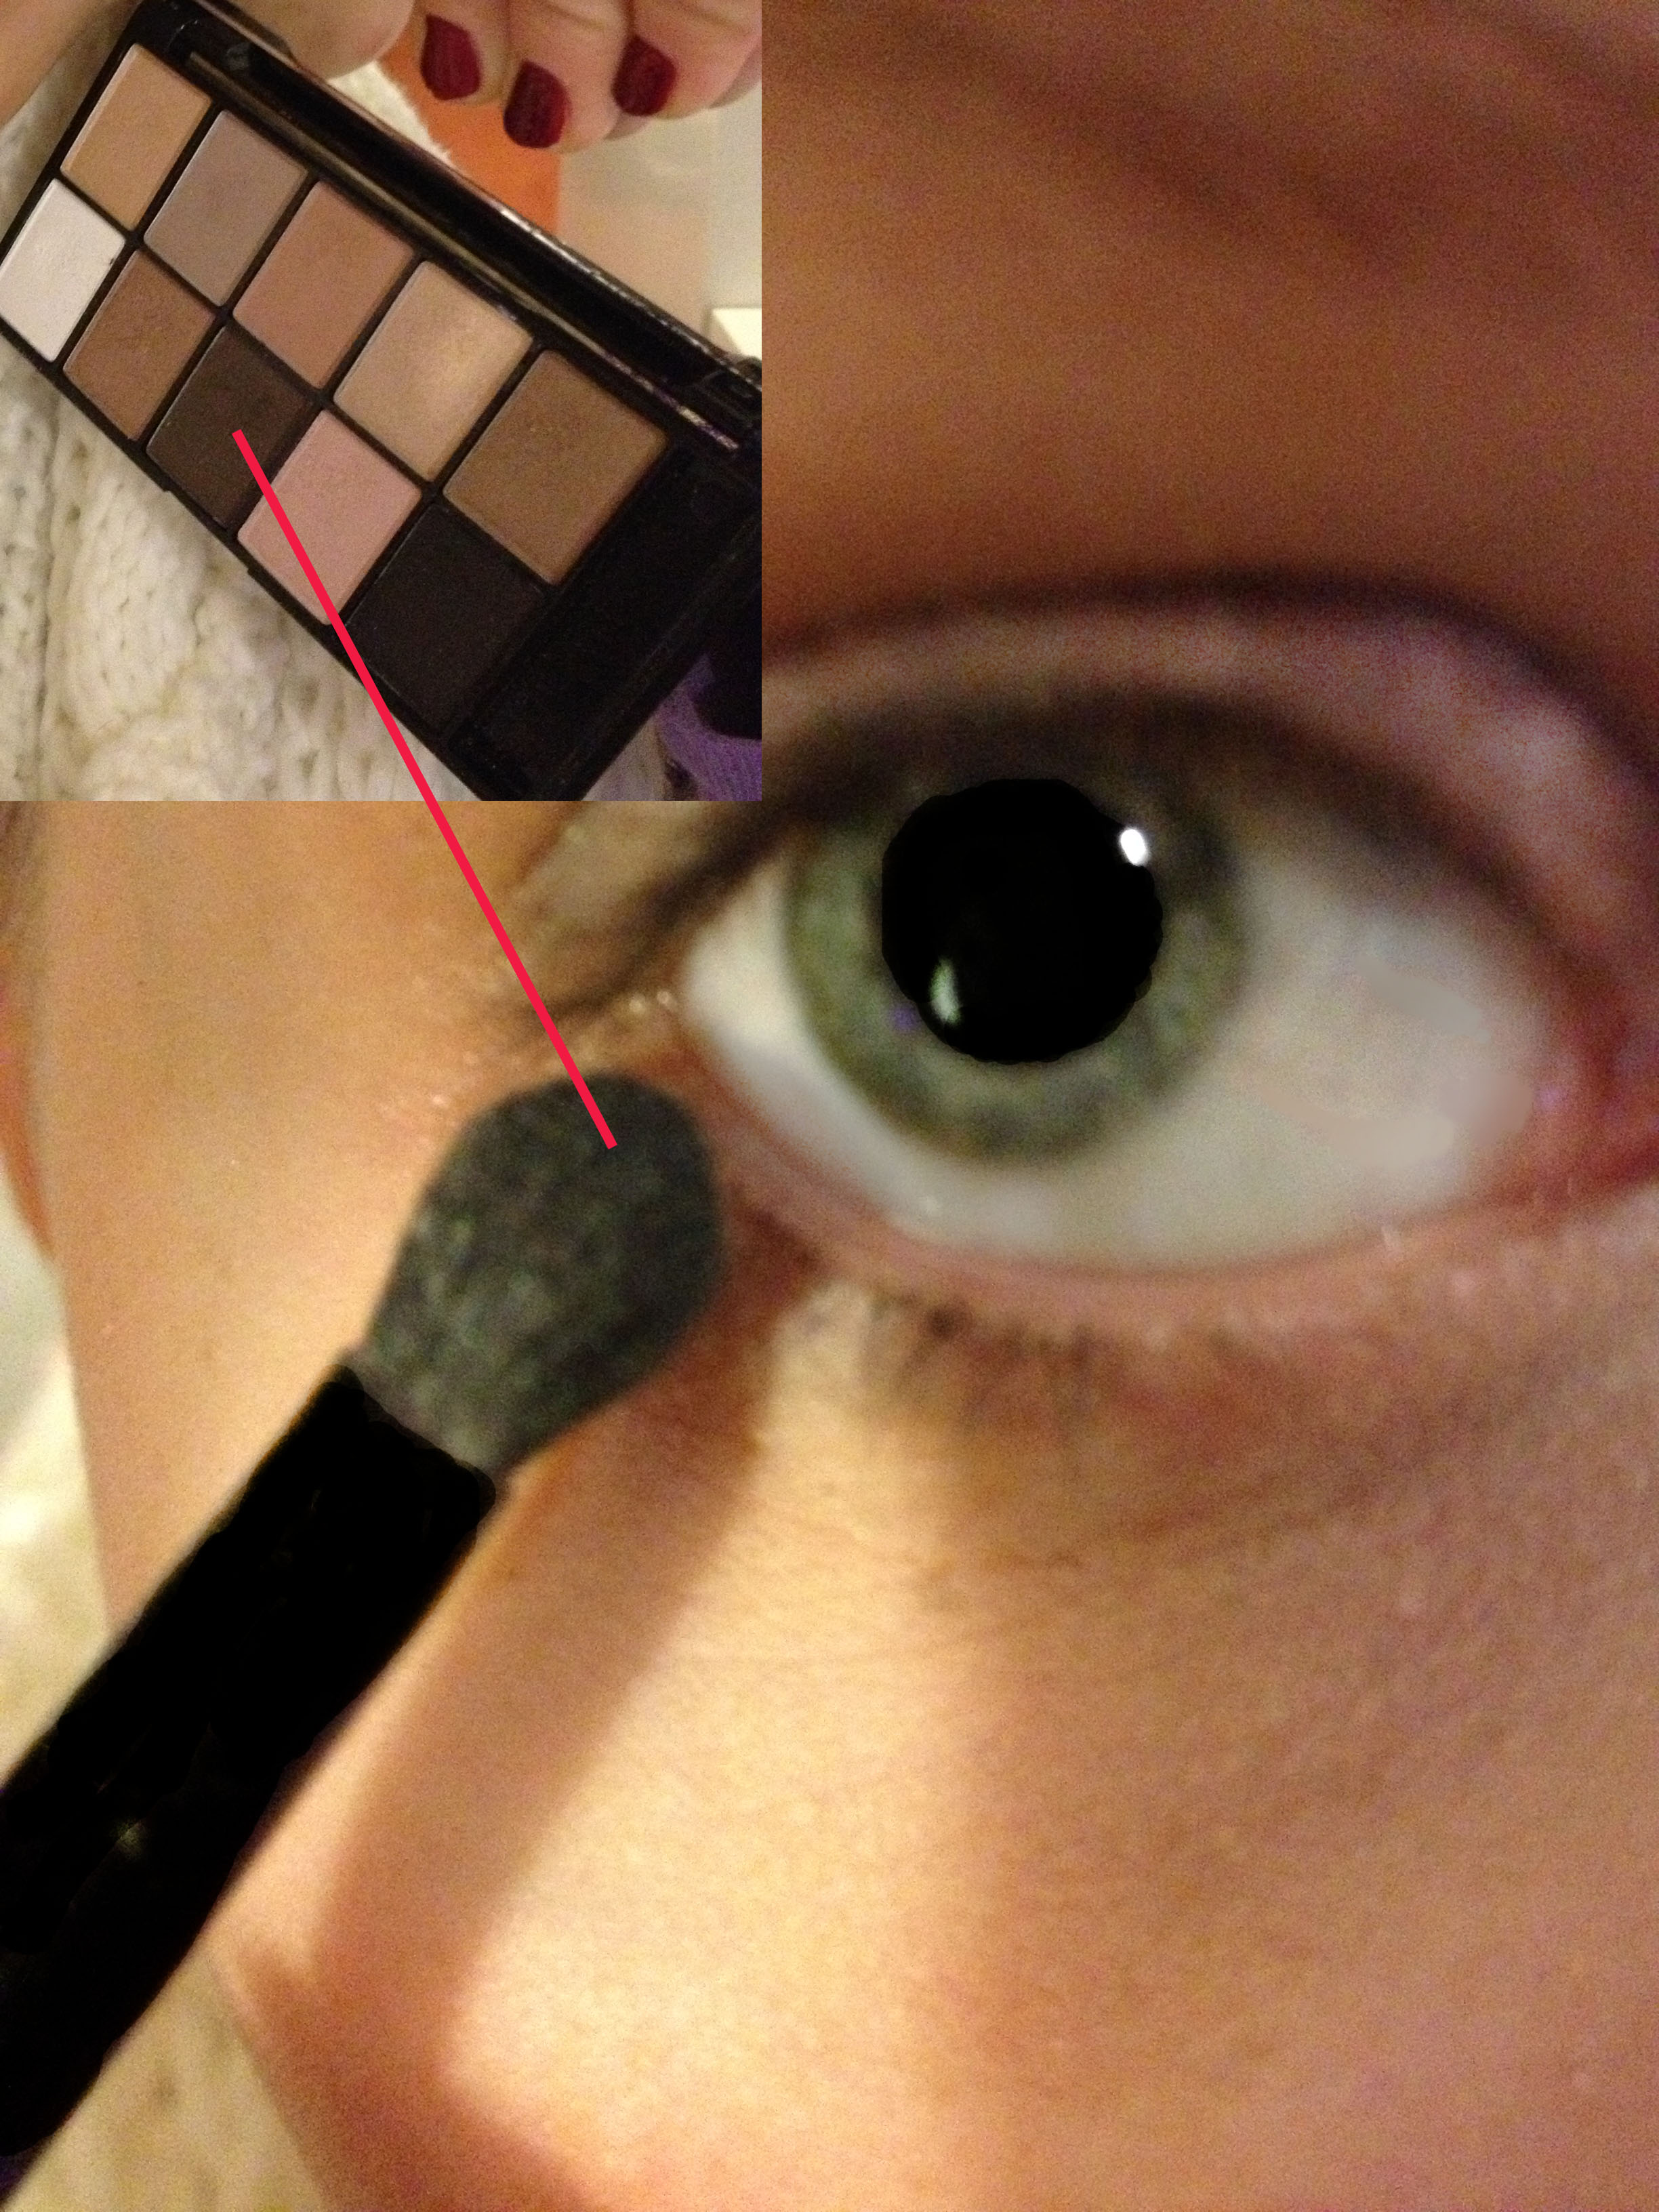 Picture of Contouring the Eye